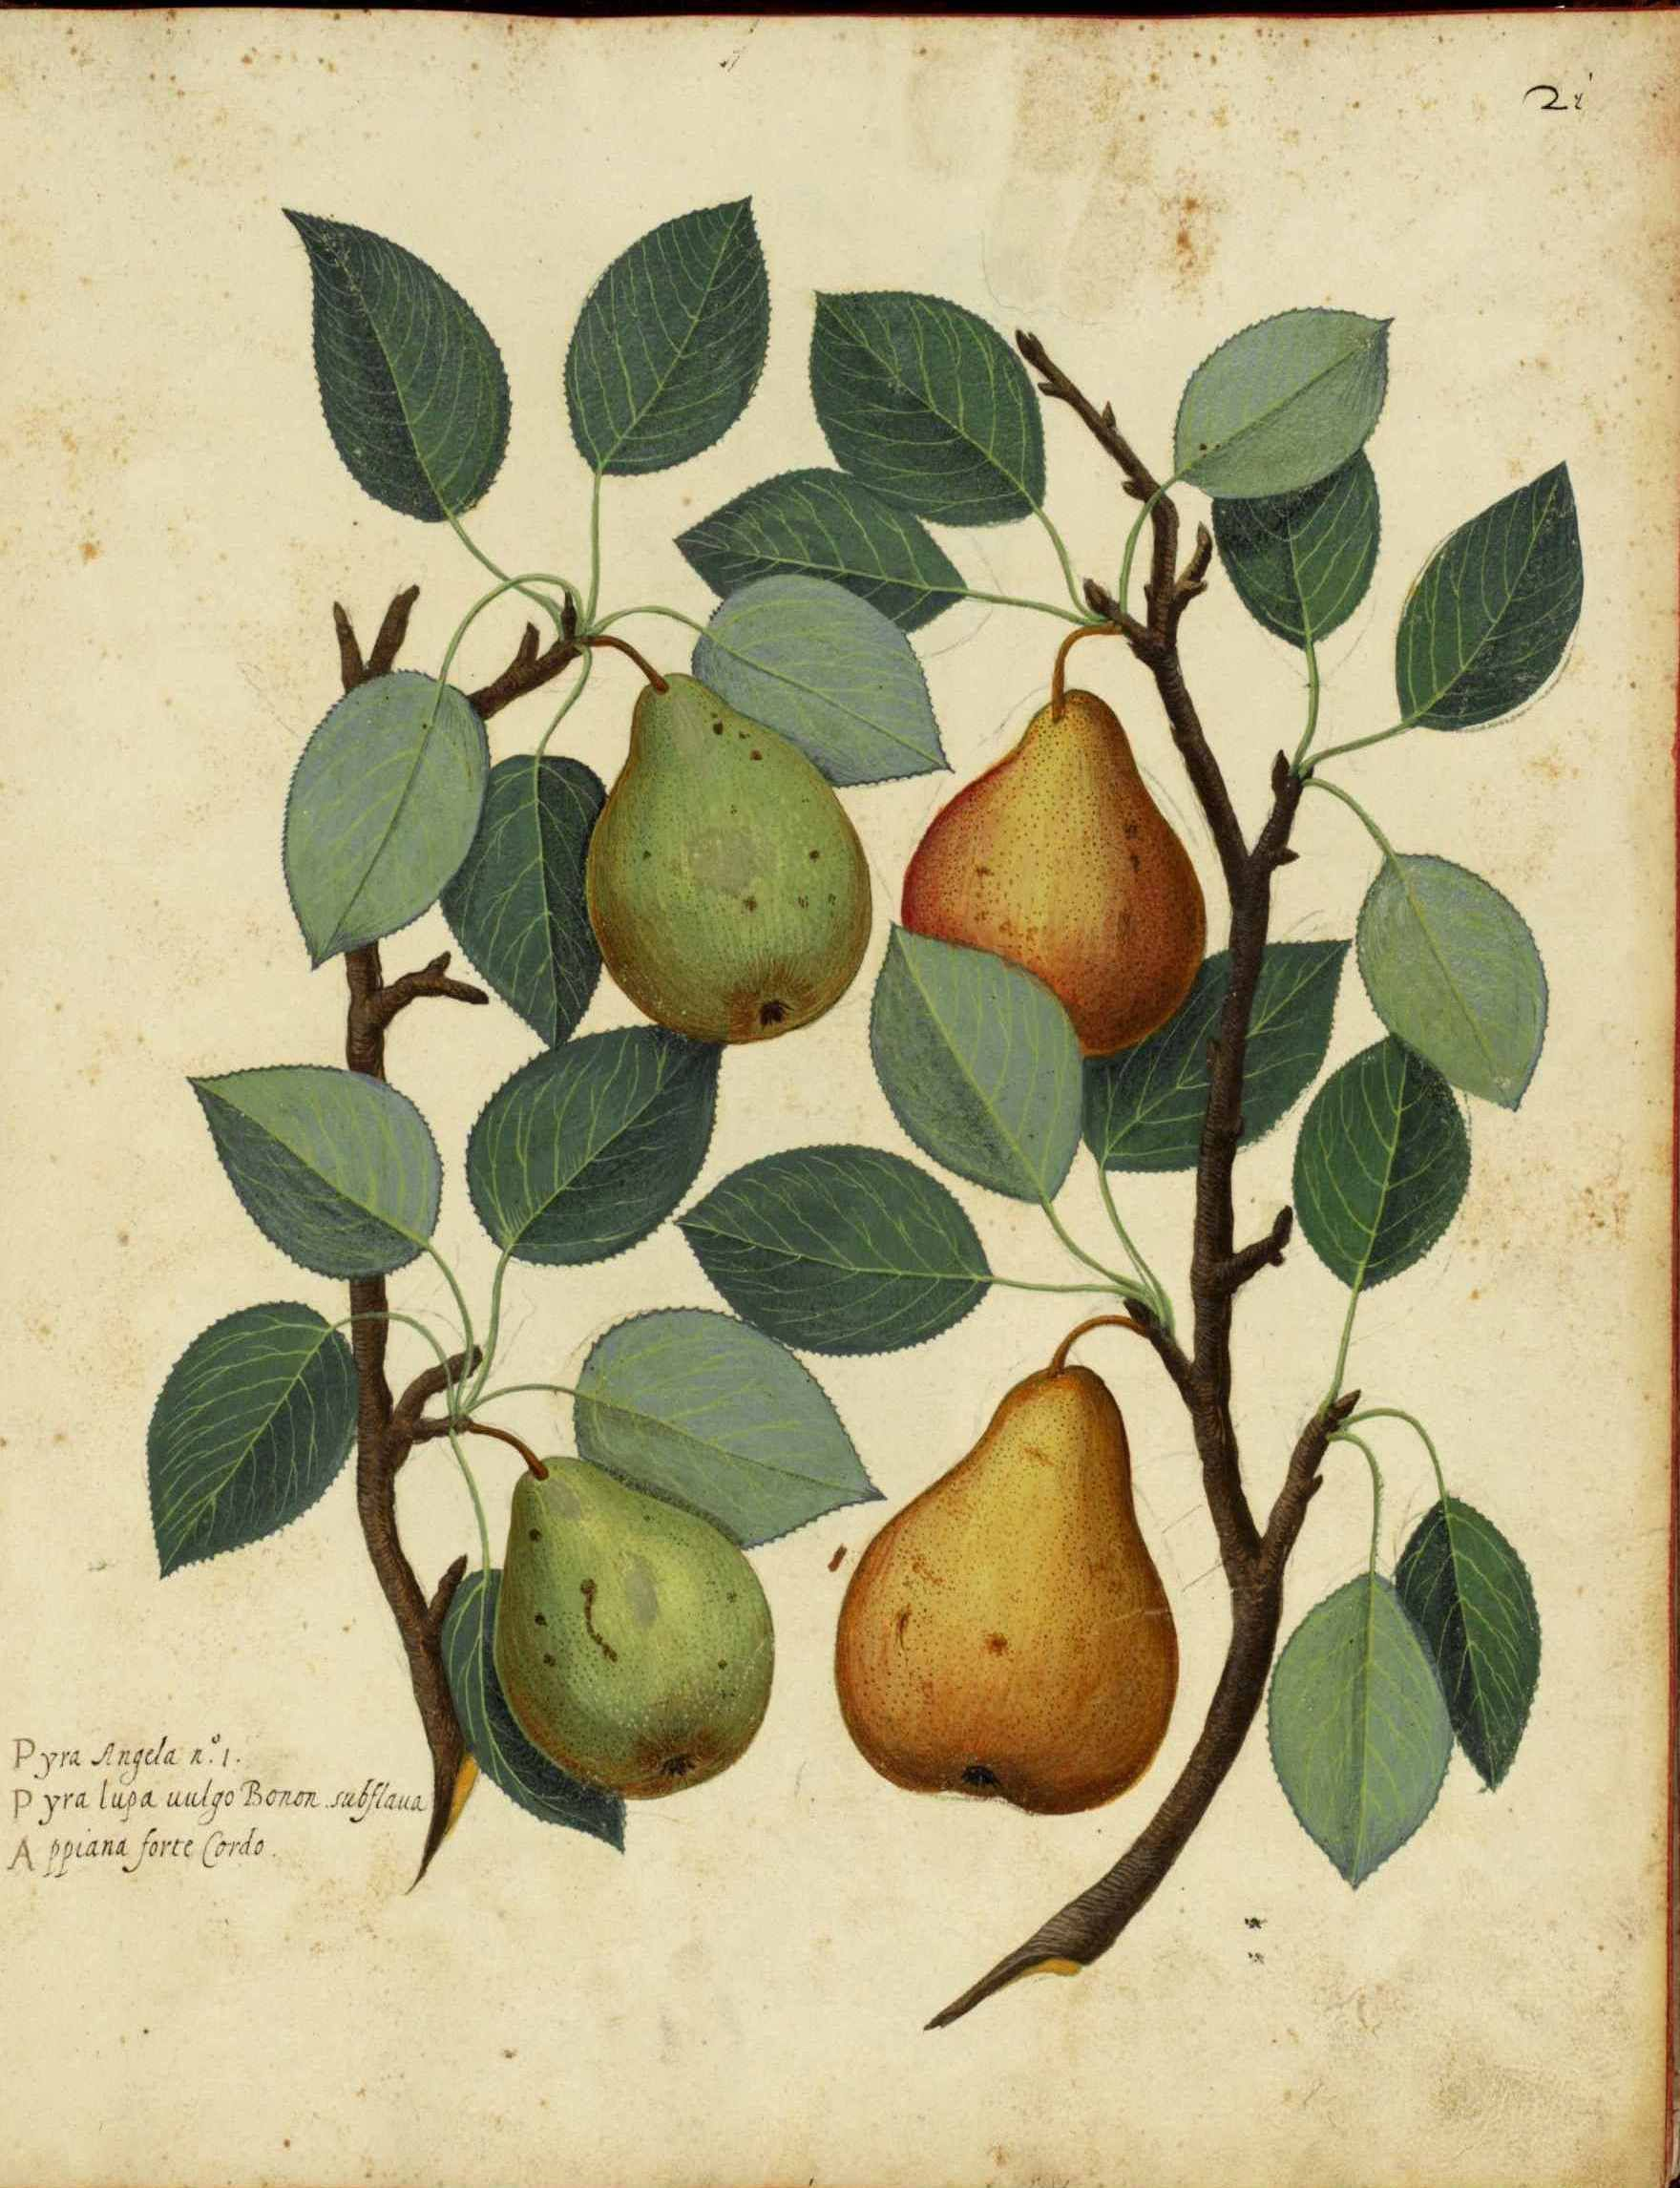 25 free vintage nature images for fall pear history images and